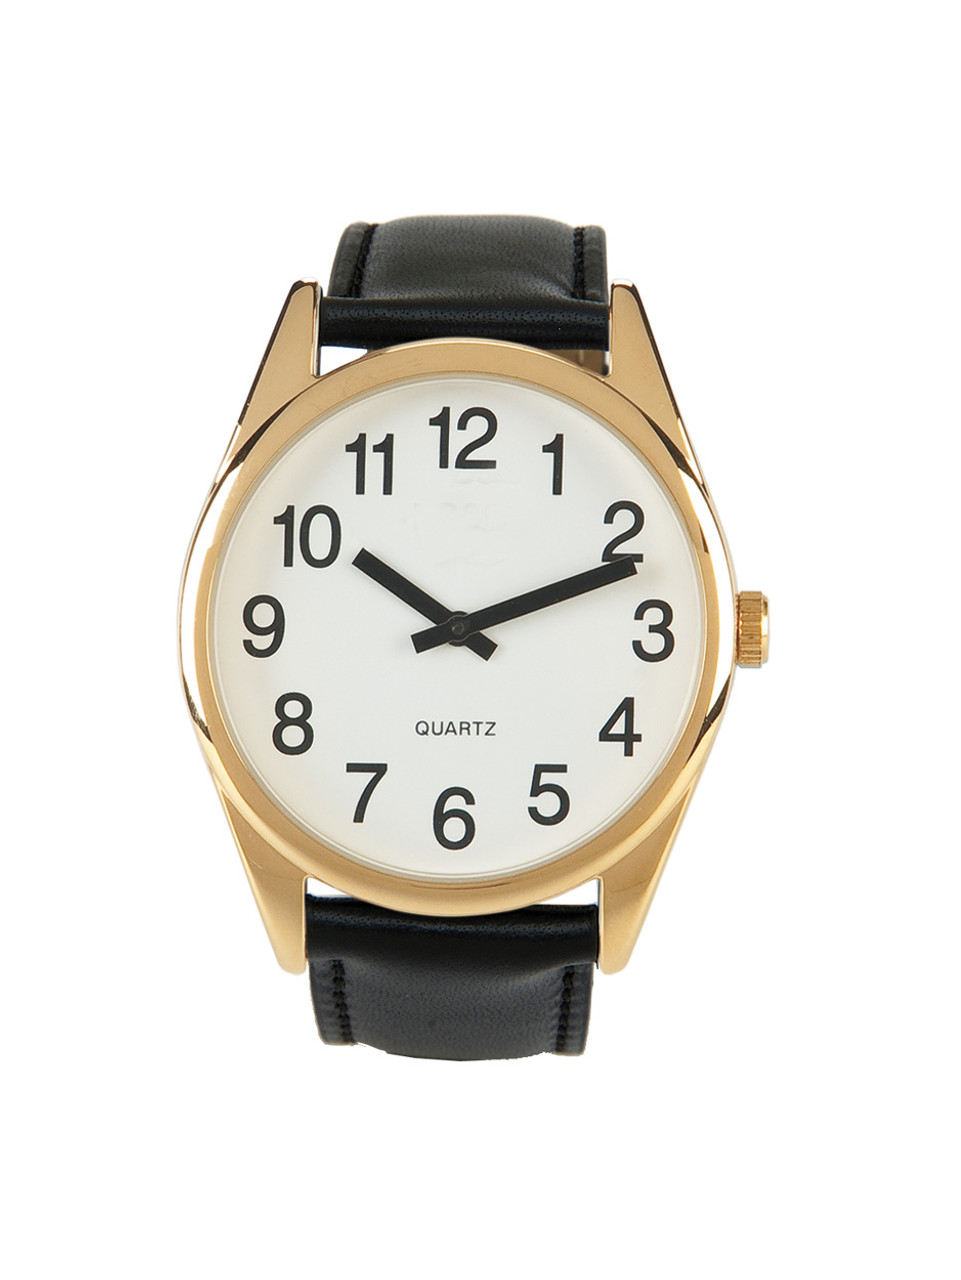 Low Vision Gold Tone Watch With White Face and Leather Band